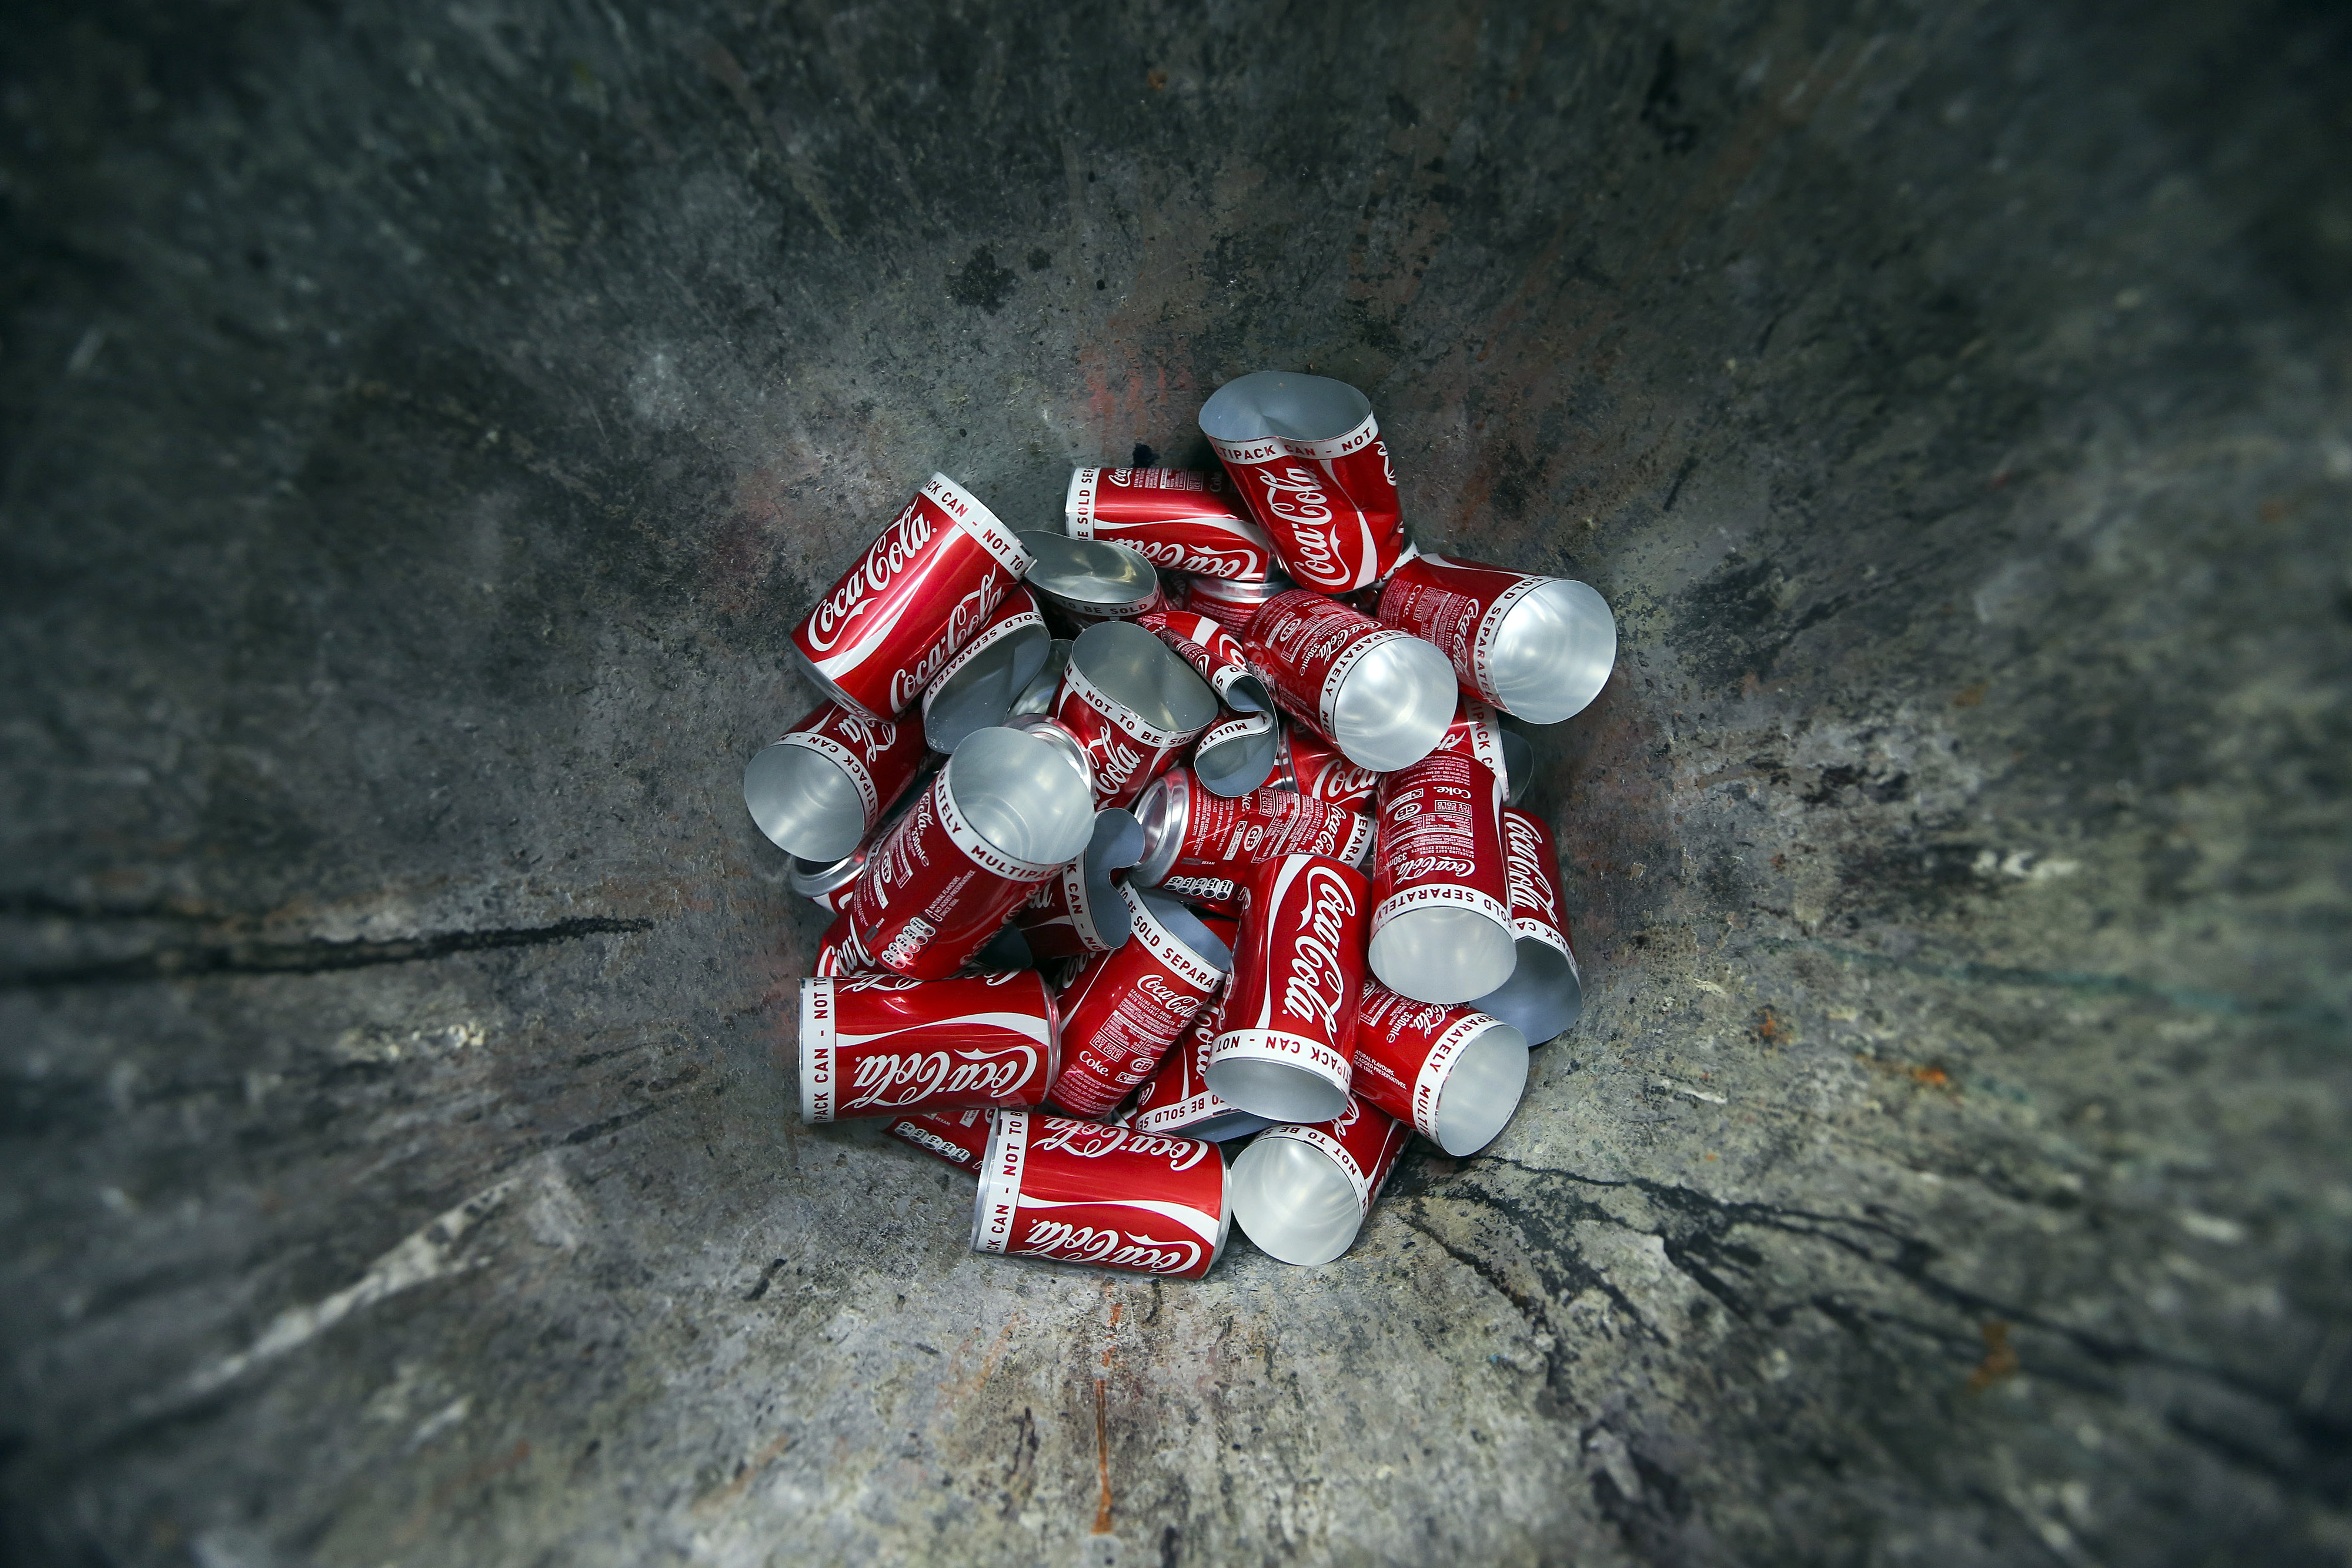 Aluminum Drink Can Manufacture At Rexam Plc's Production Facility